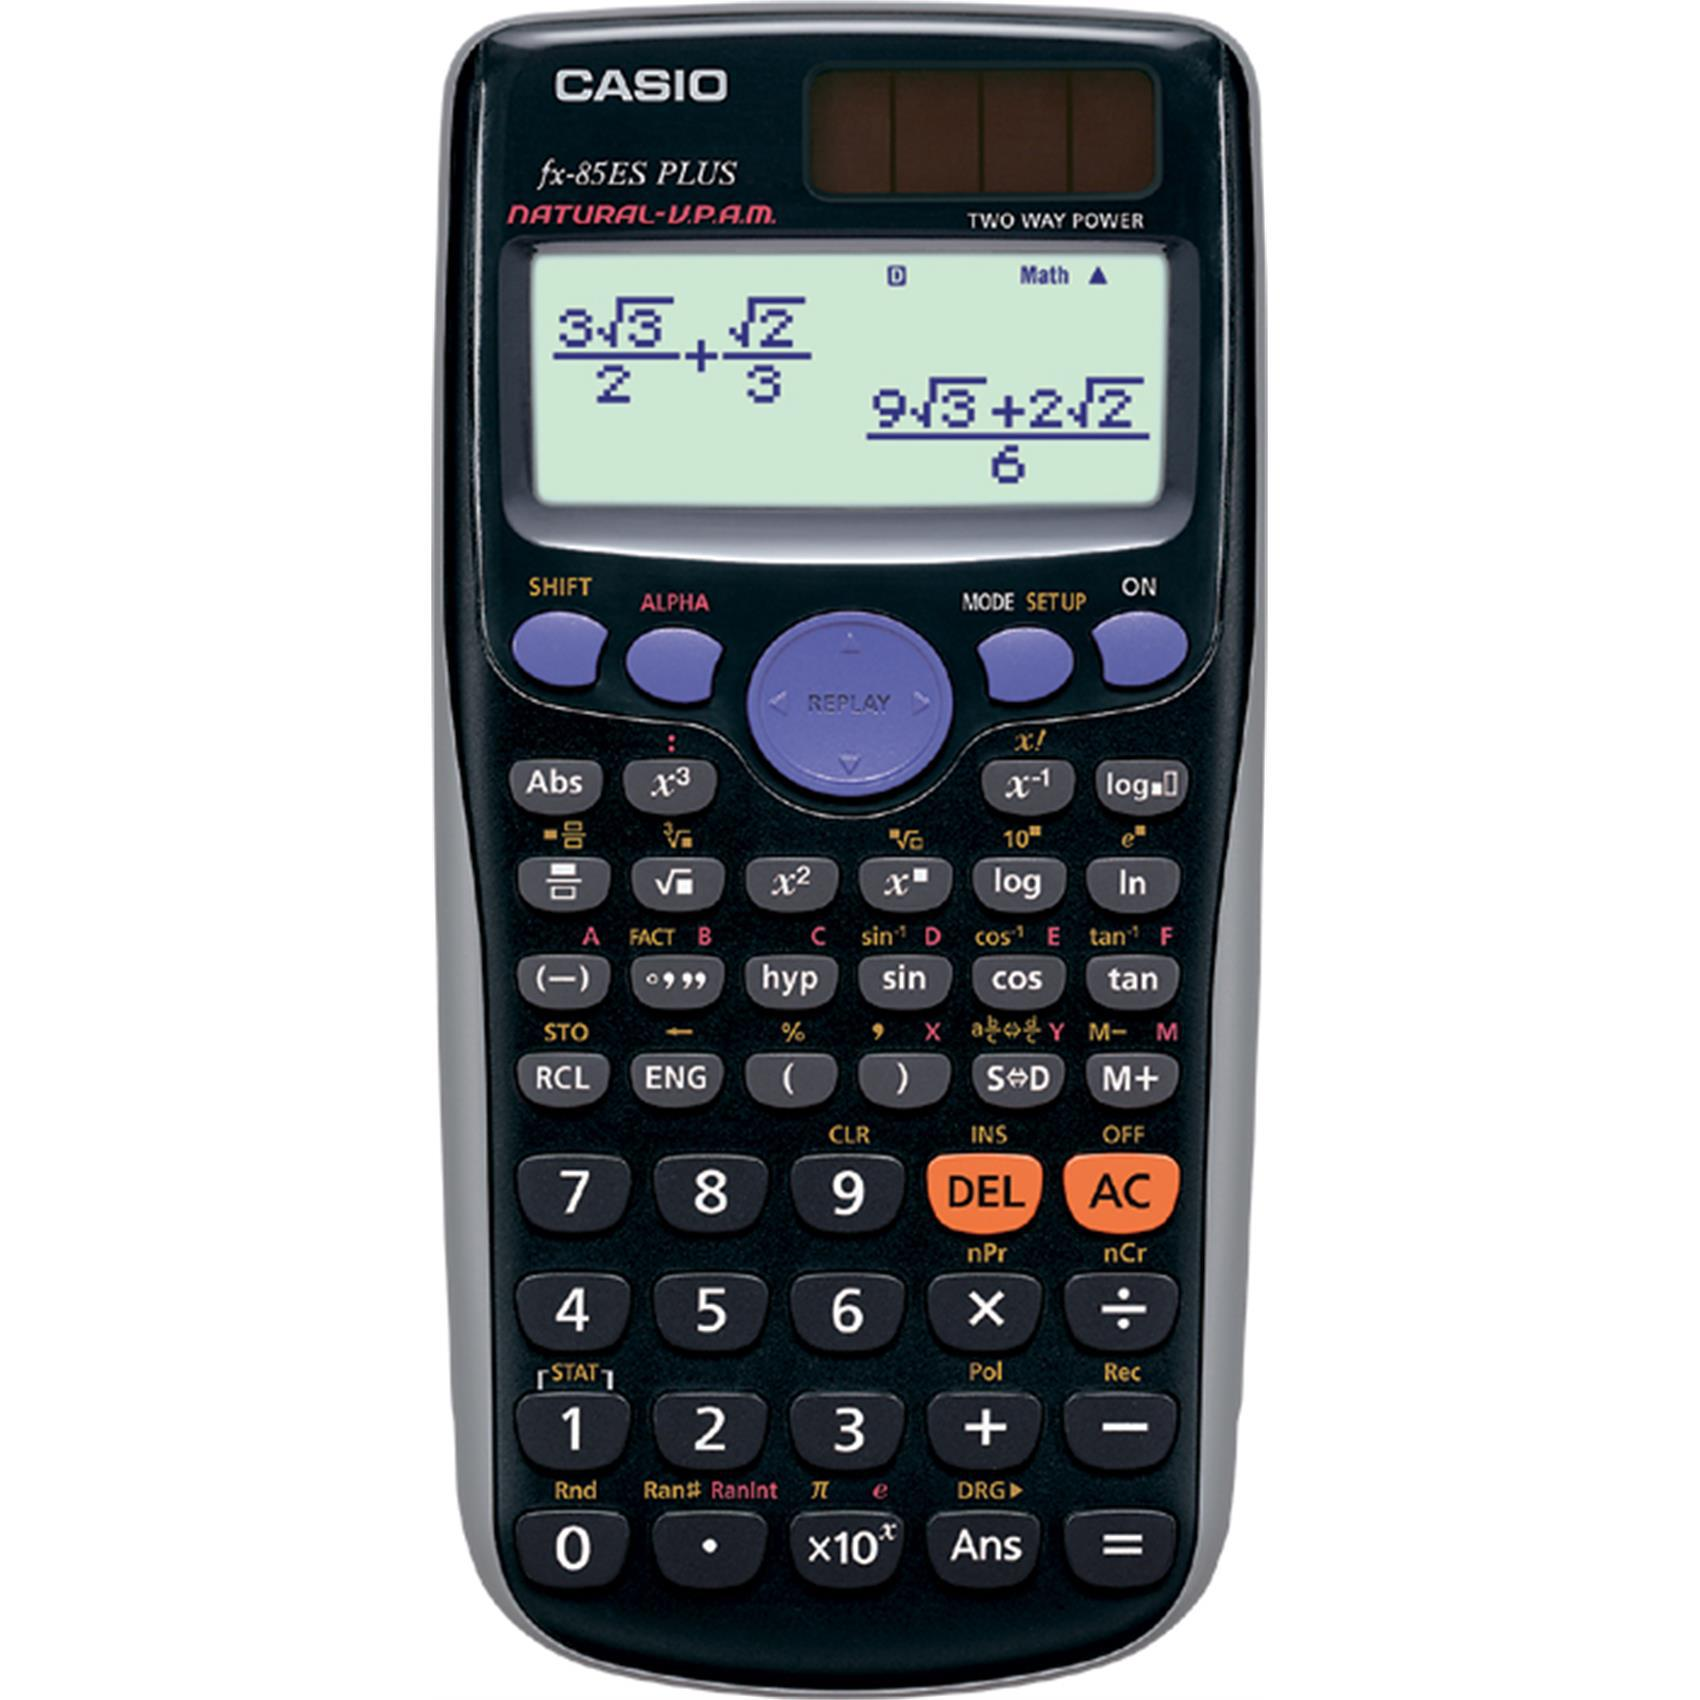 CASIO FX-85ES PLUS SCIENTIFIC